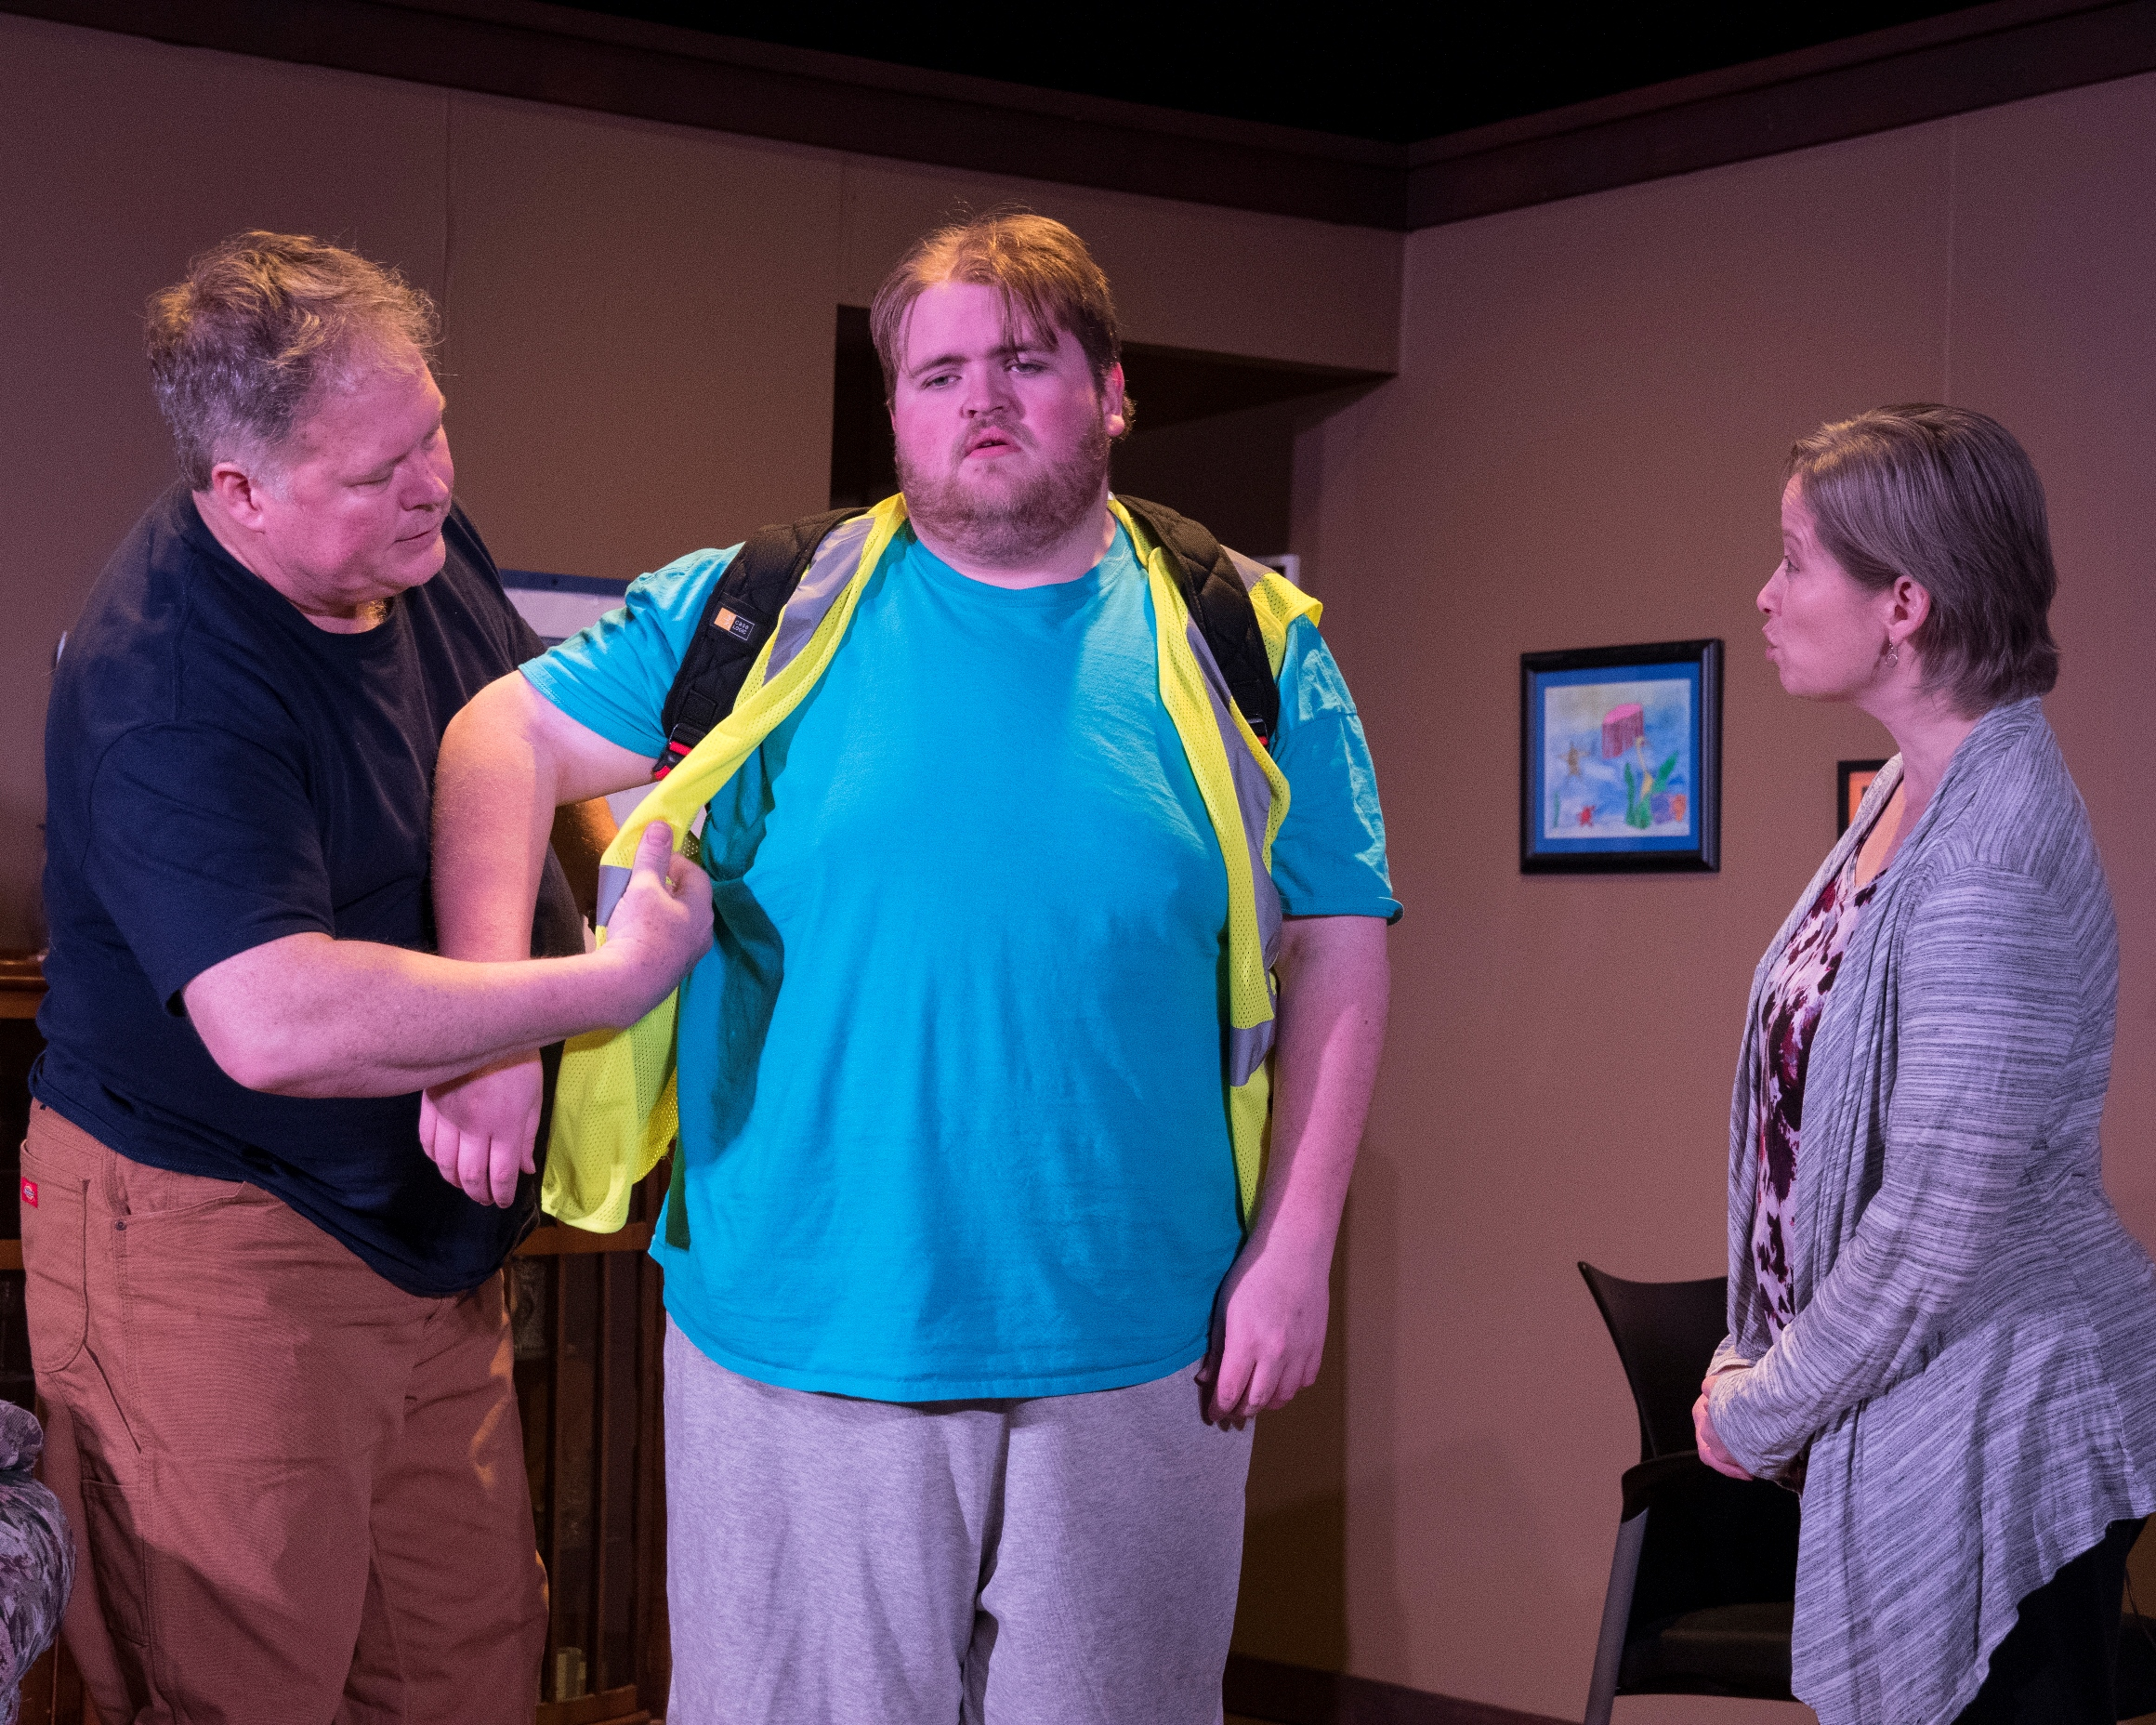 Josh's parents help him get ready for school. Josh is portrayed by Jack Janssen, while his parents are portrayed by Chrissy Calkins Steele and Geoff Callaway. Photographed by Kim Howland.